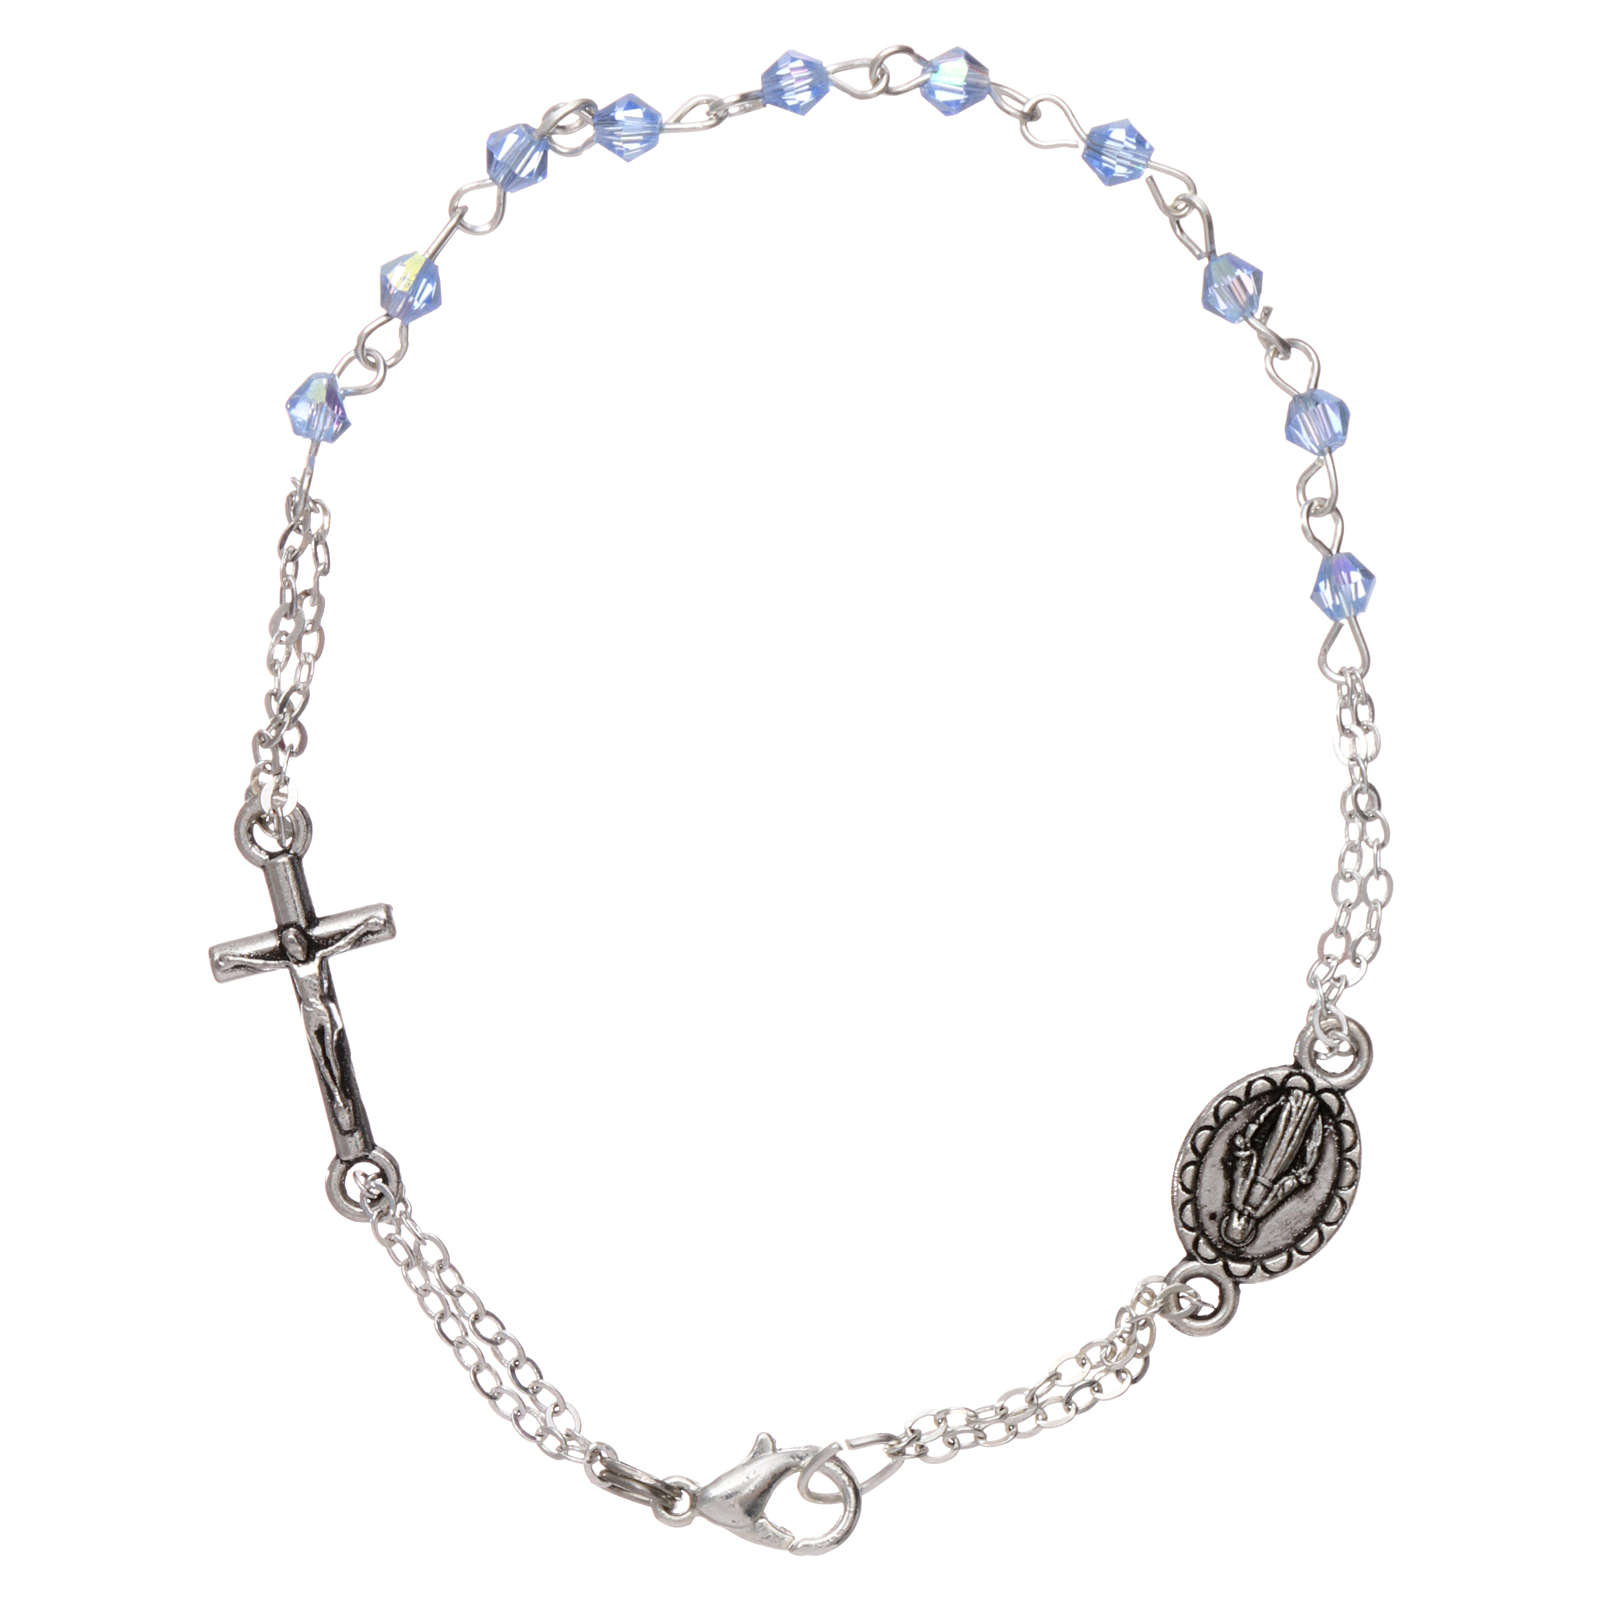 Rosary decade bracelet with 1x1 mm faceted light blue grains, fastener and miraculous medal 4